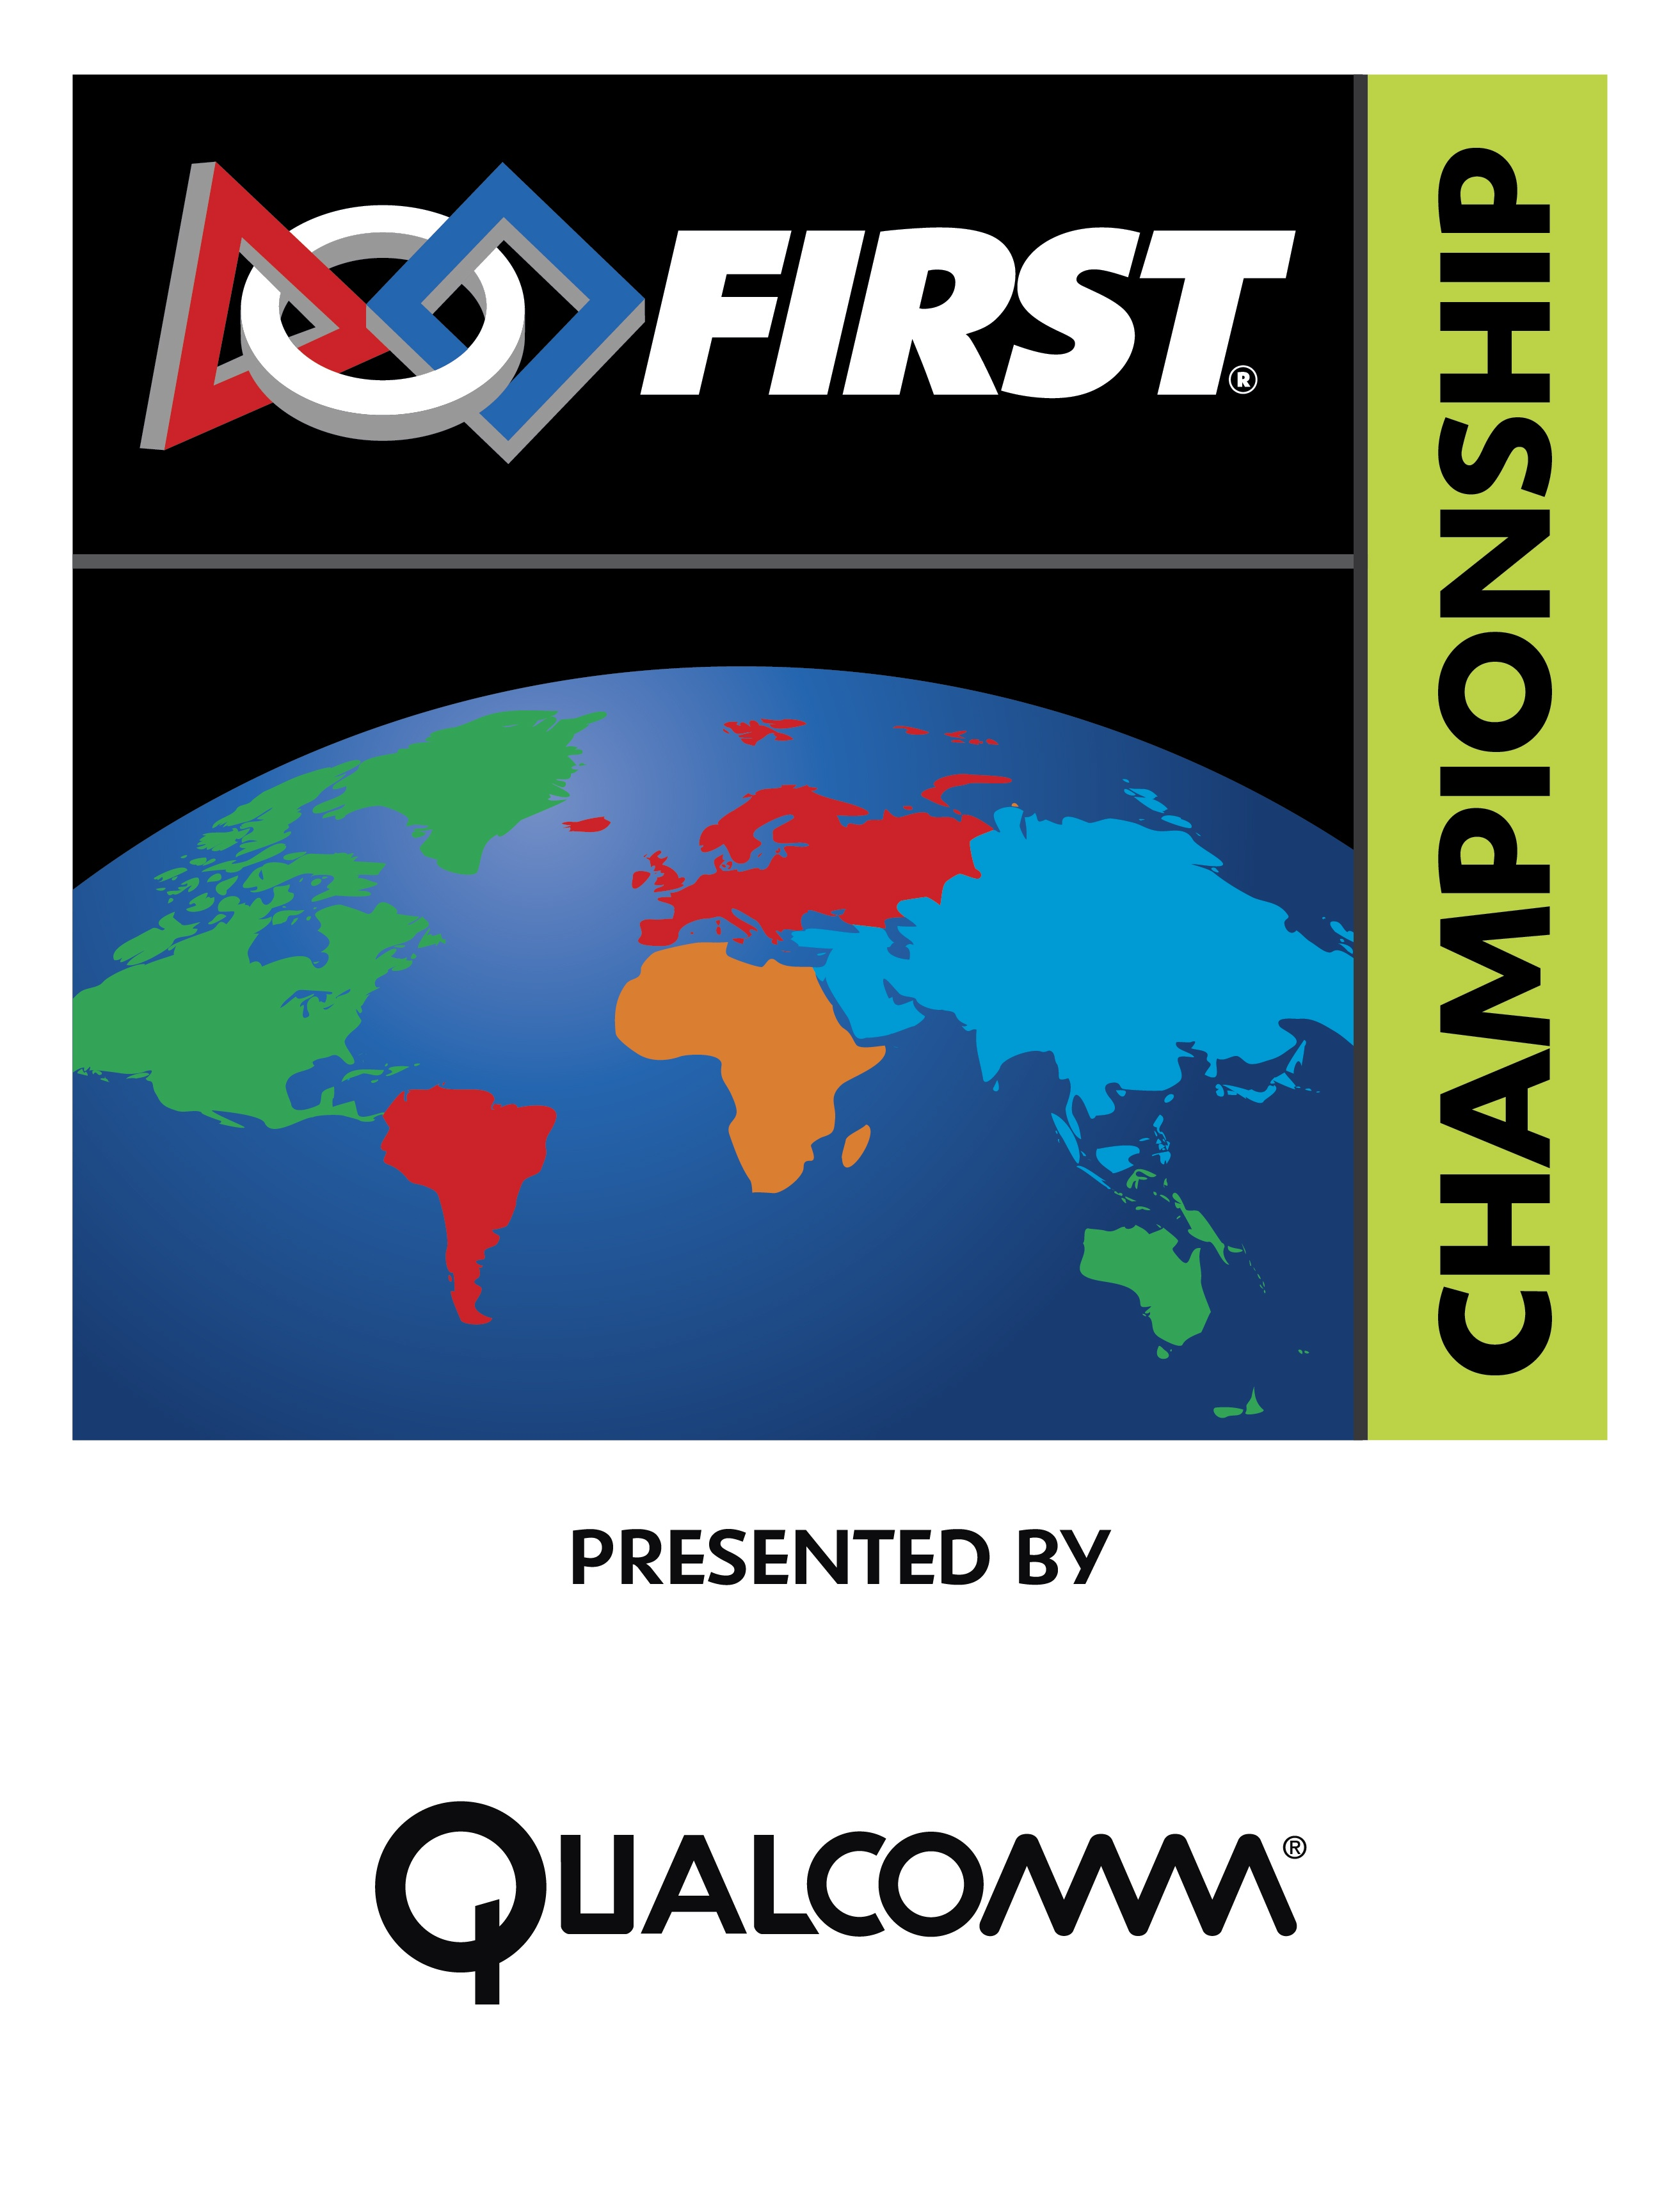 FIRST Championship Presented by Qualcomm